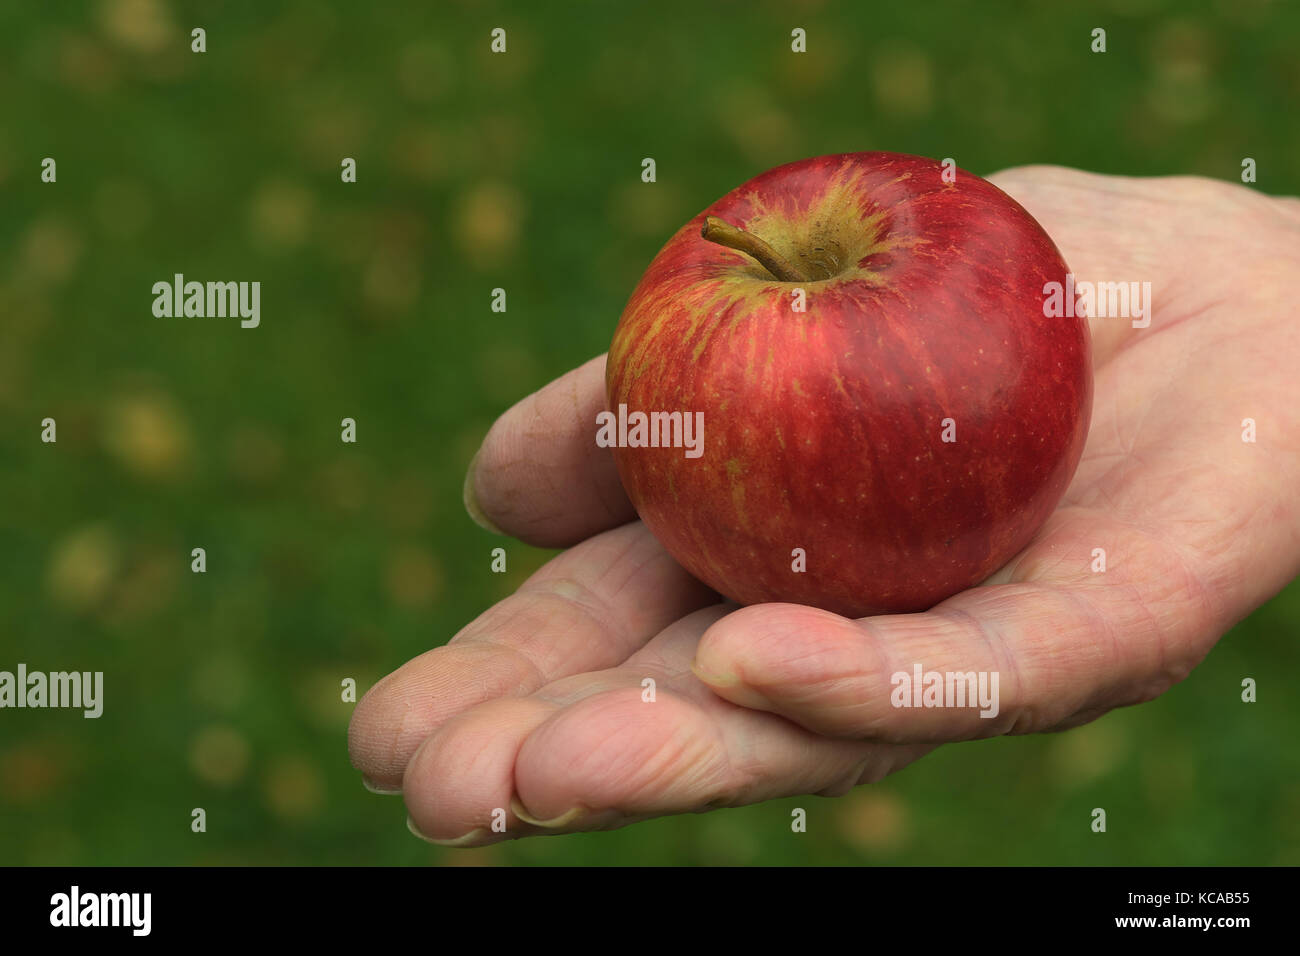 An organic Red Pippin apple in the palm of an open hand - Stock Image